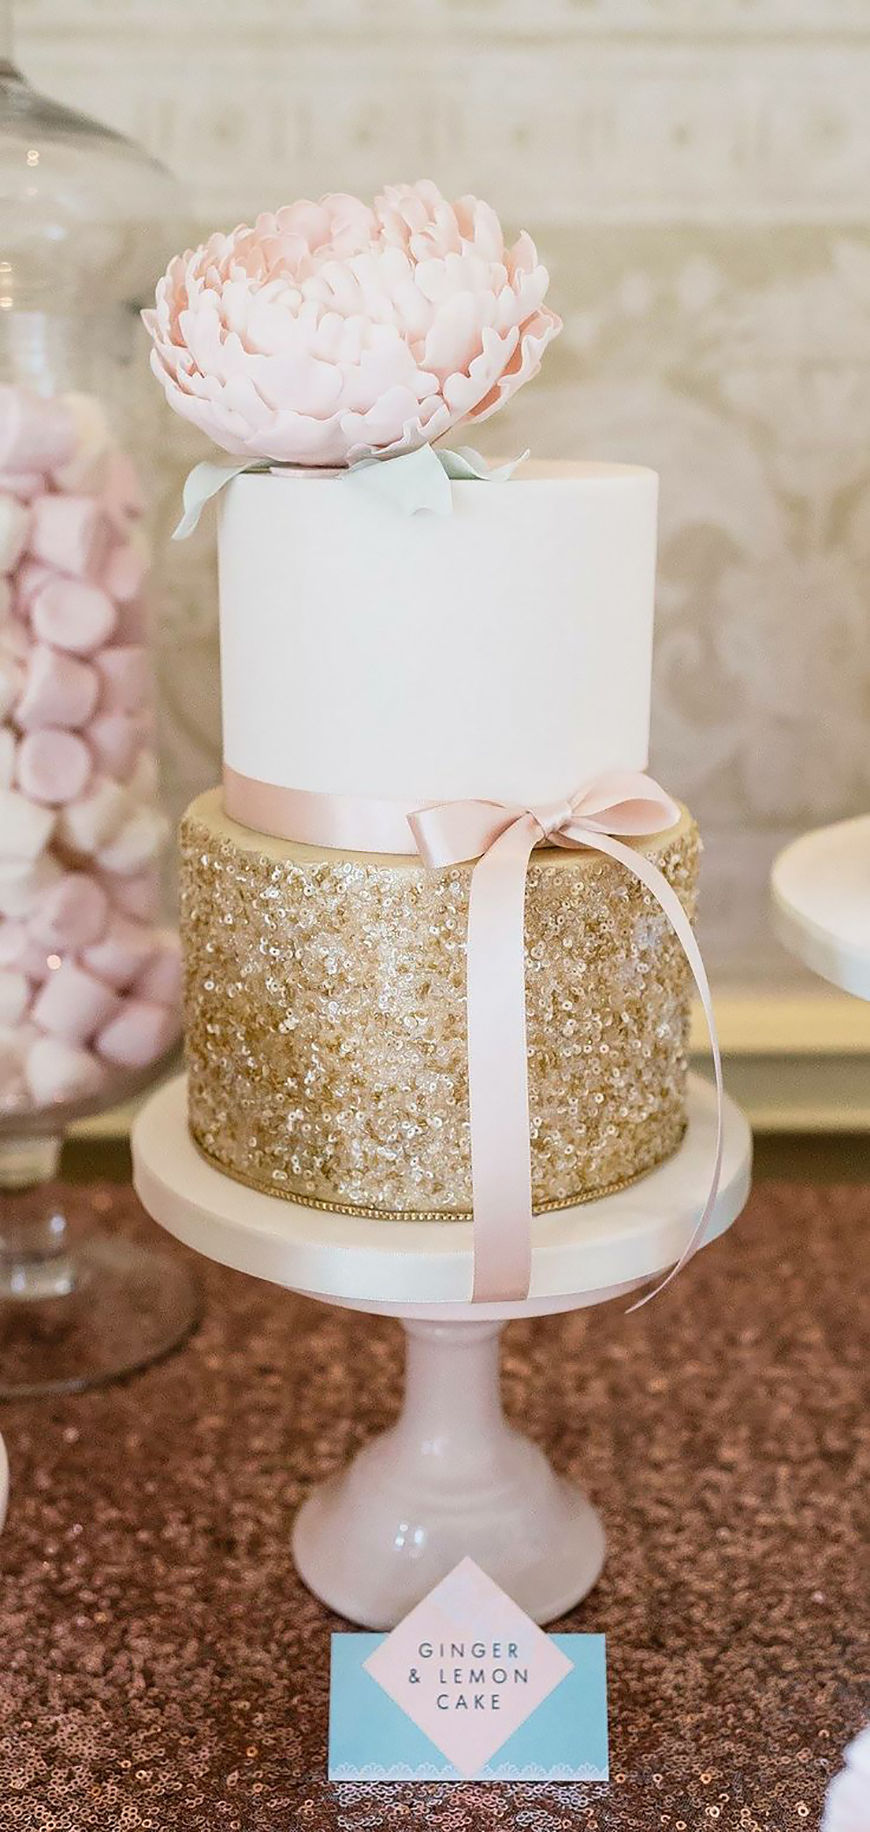 Wedding Ideas By Colour: White Wedding Cakes - Time to sparkle | CHWV